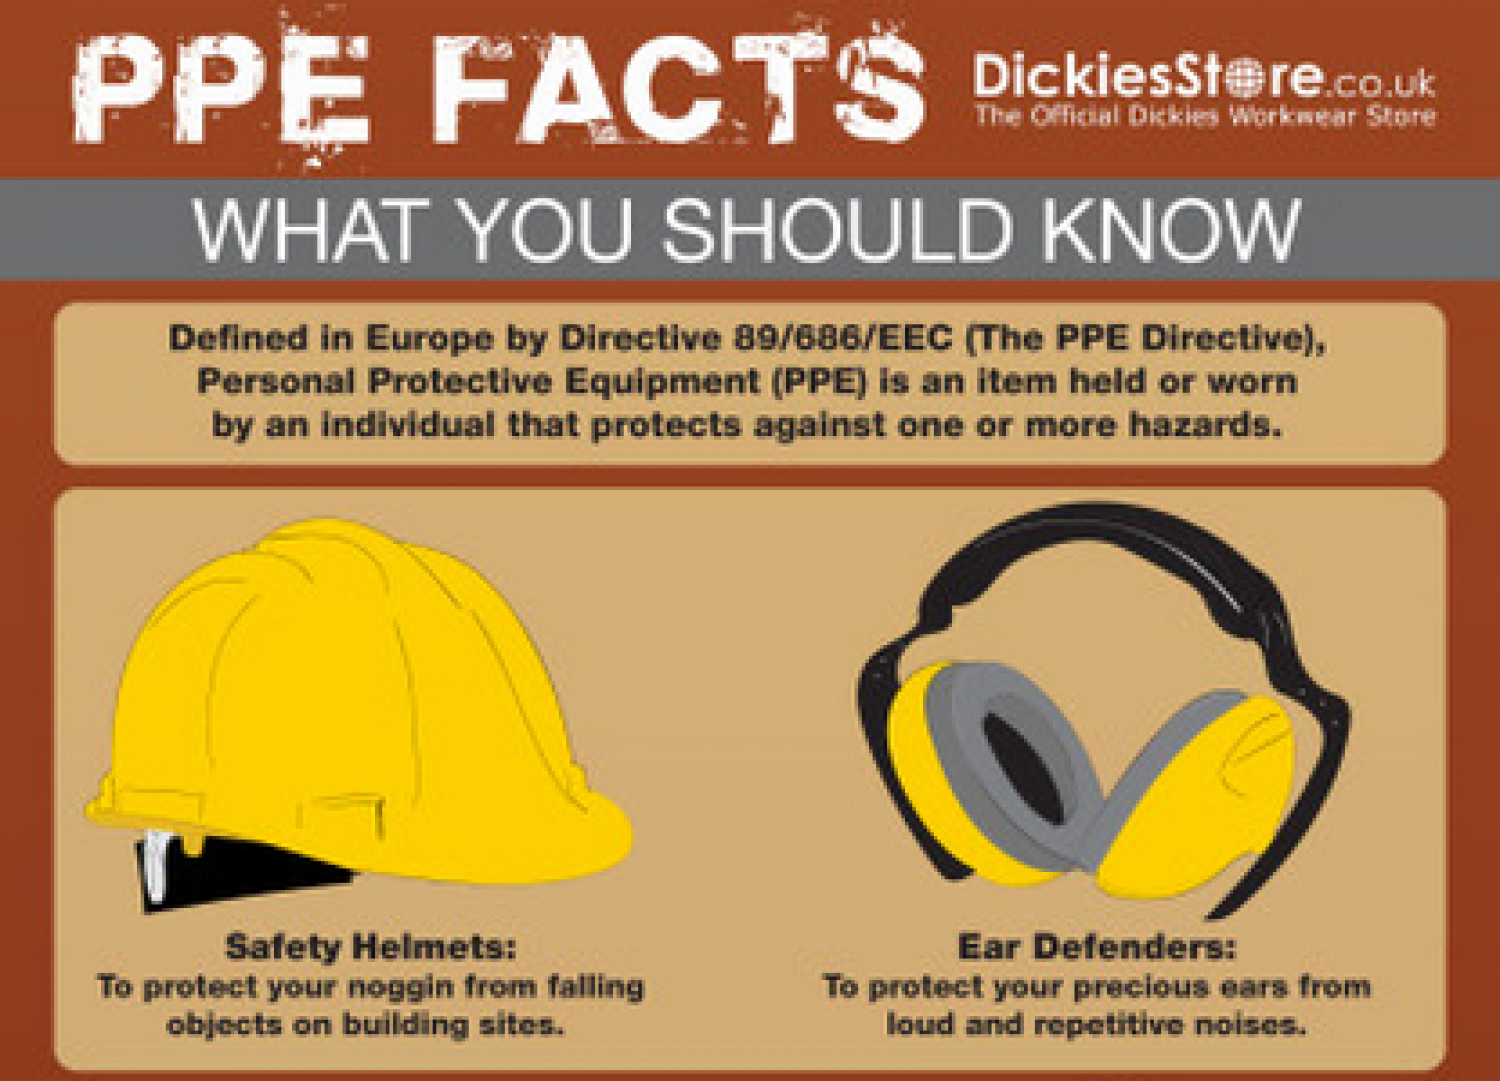 PPE Facts: What You Should Know Infographic